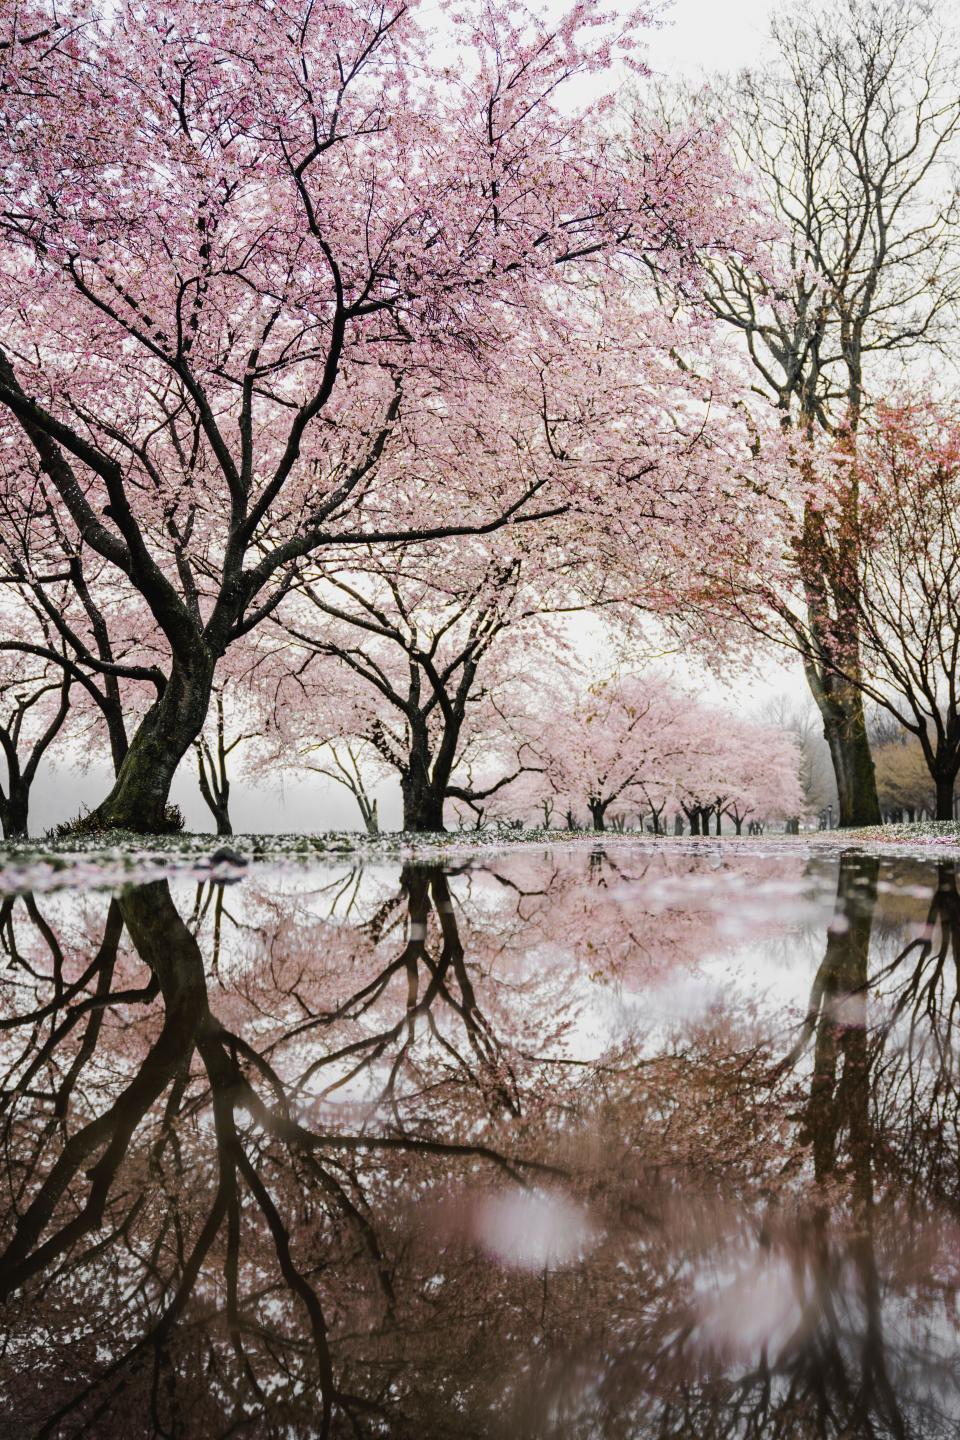 trees plant nature branch snow winter flowers pink petals blossoms bloom water reflection